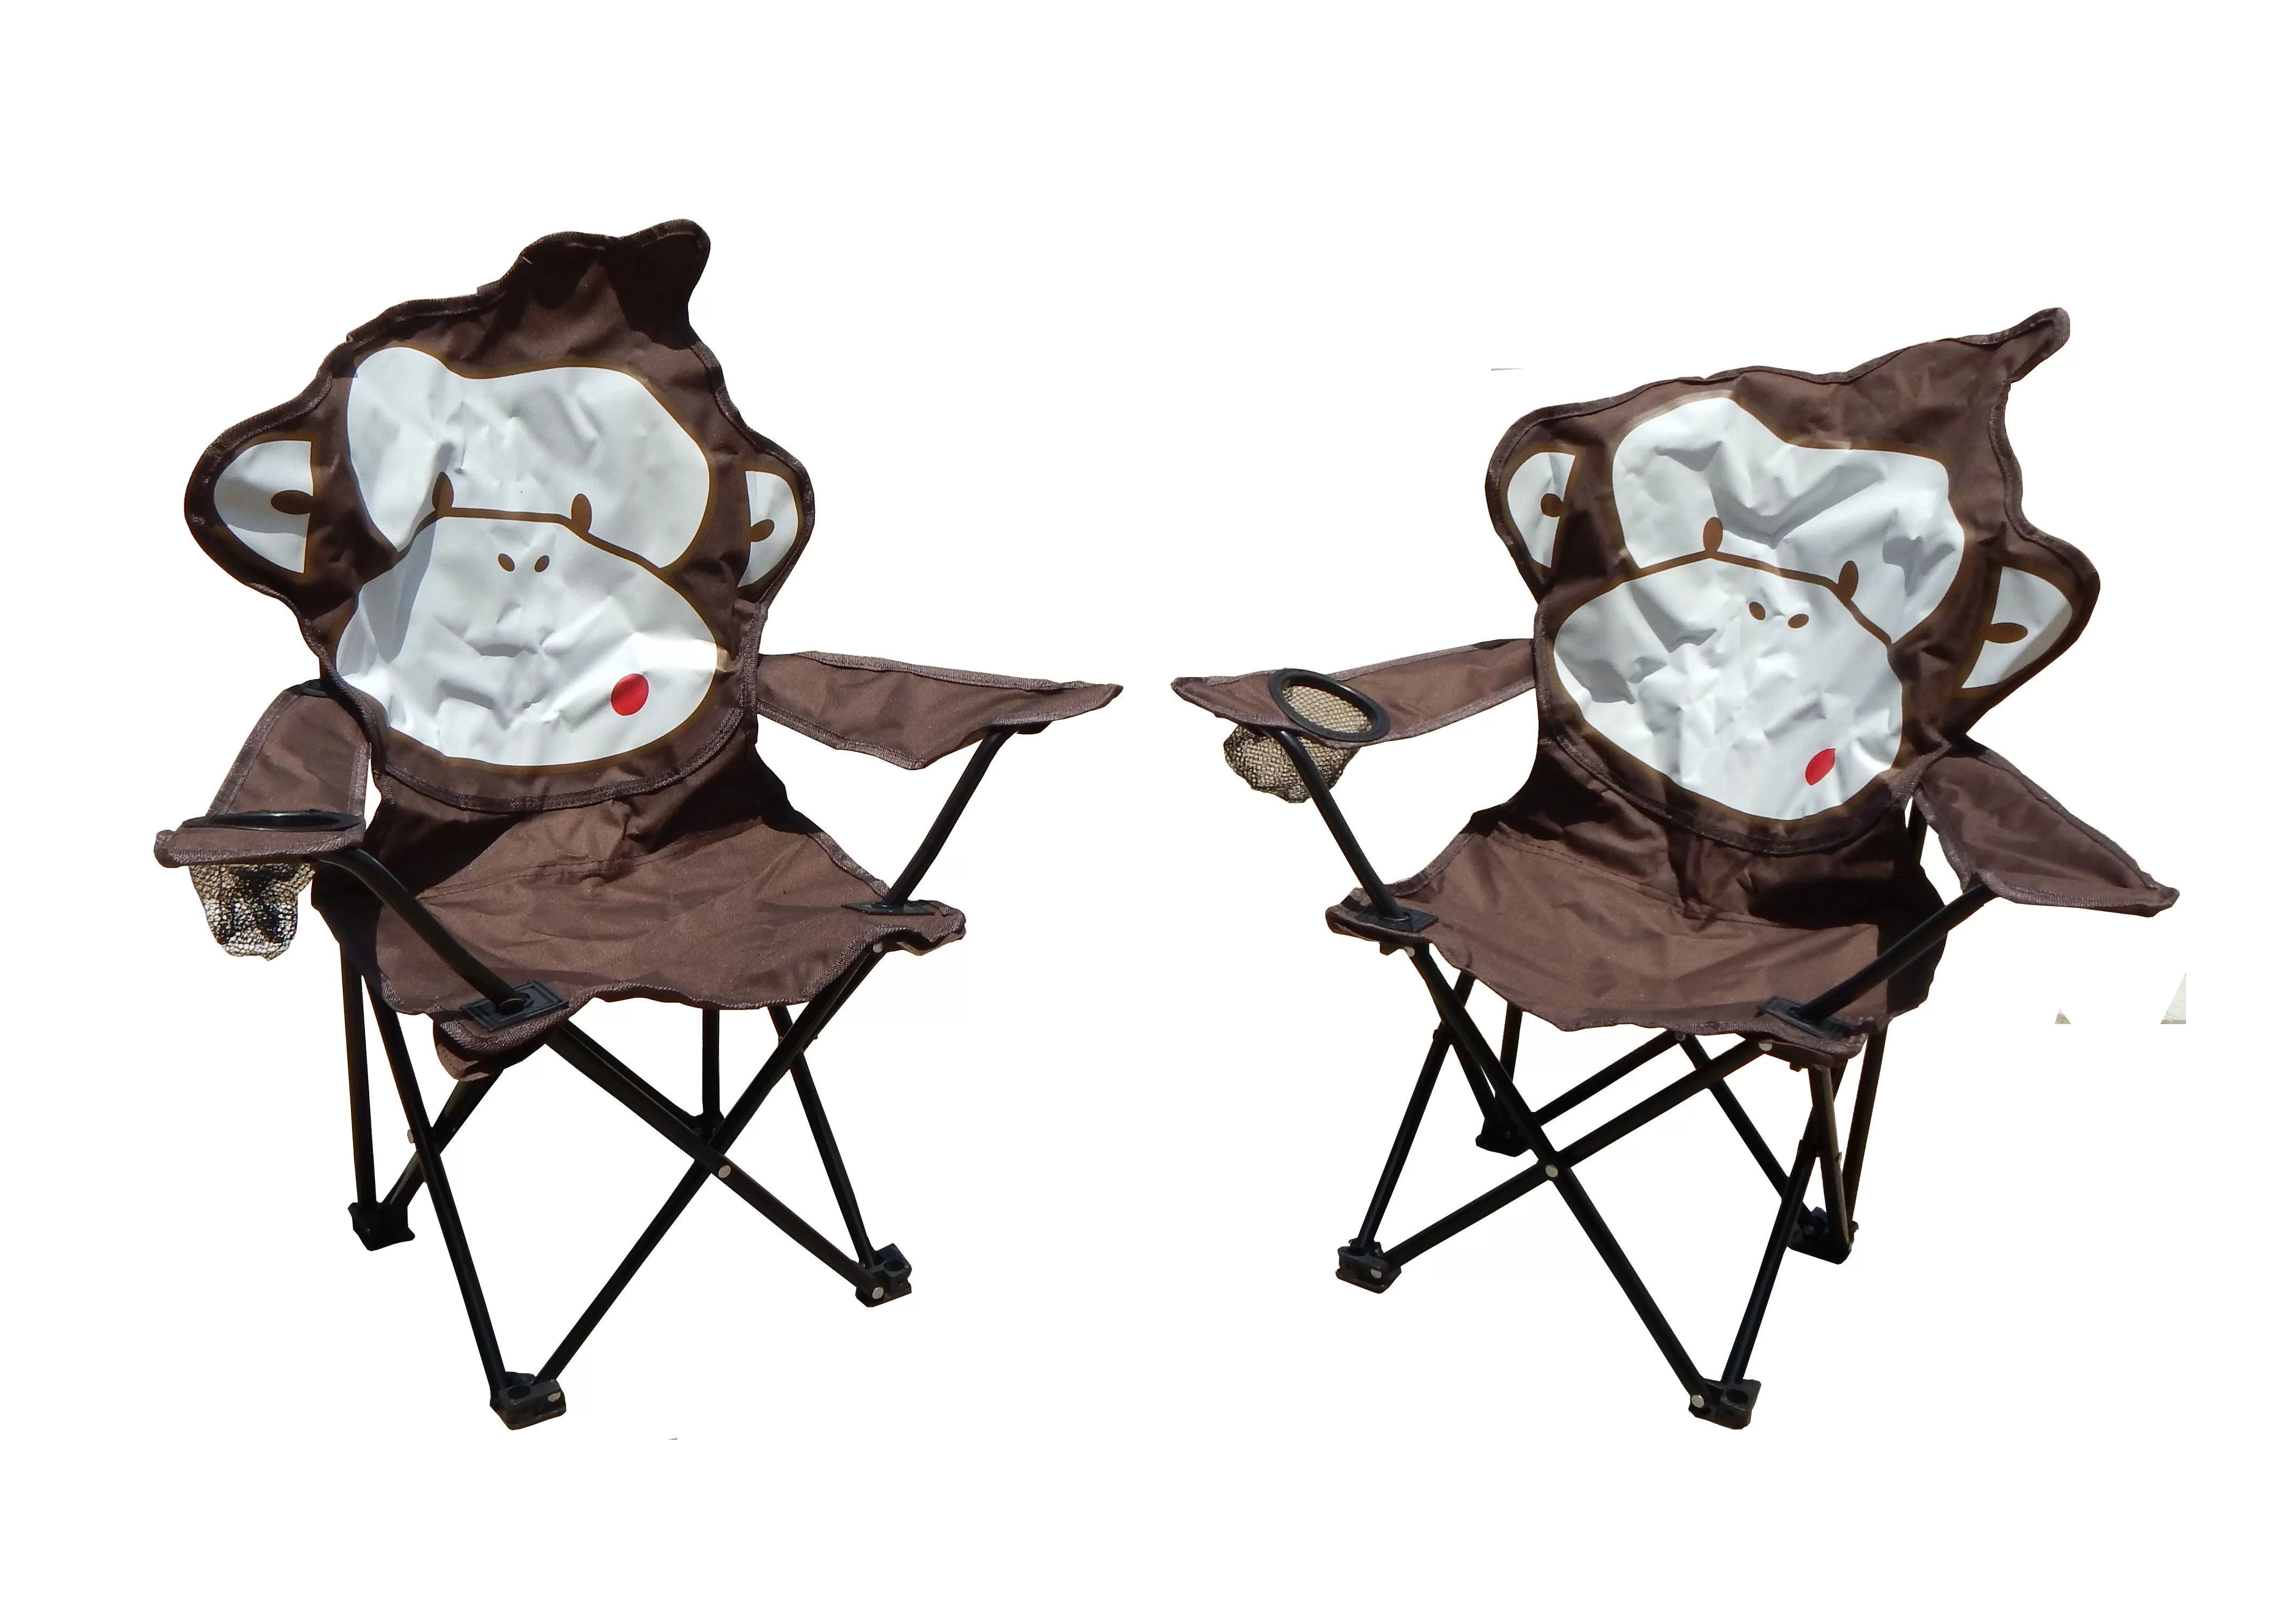 Cute Folding Chairs Zoomie Kids Marcus Monkey Folding Camping Kids Chair With Cup